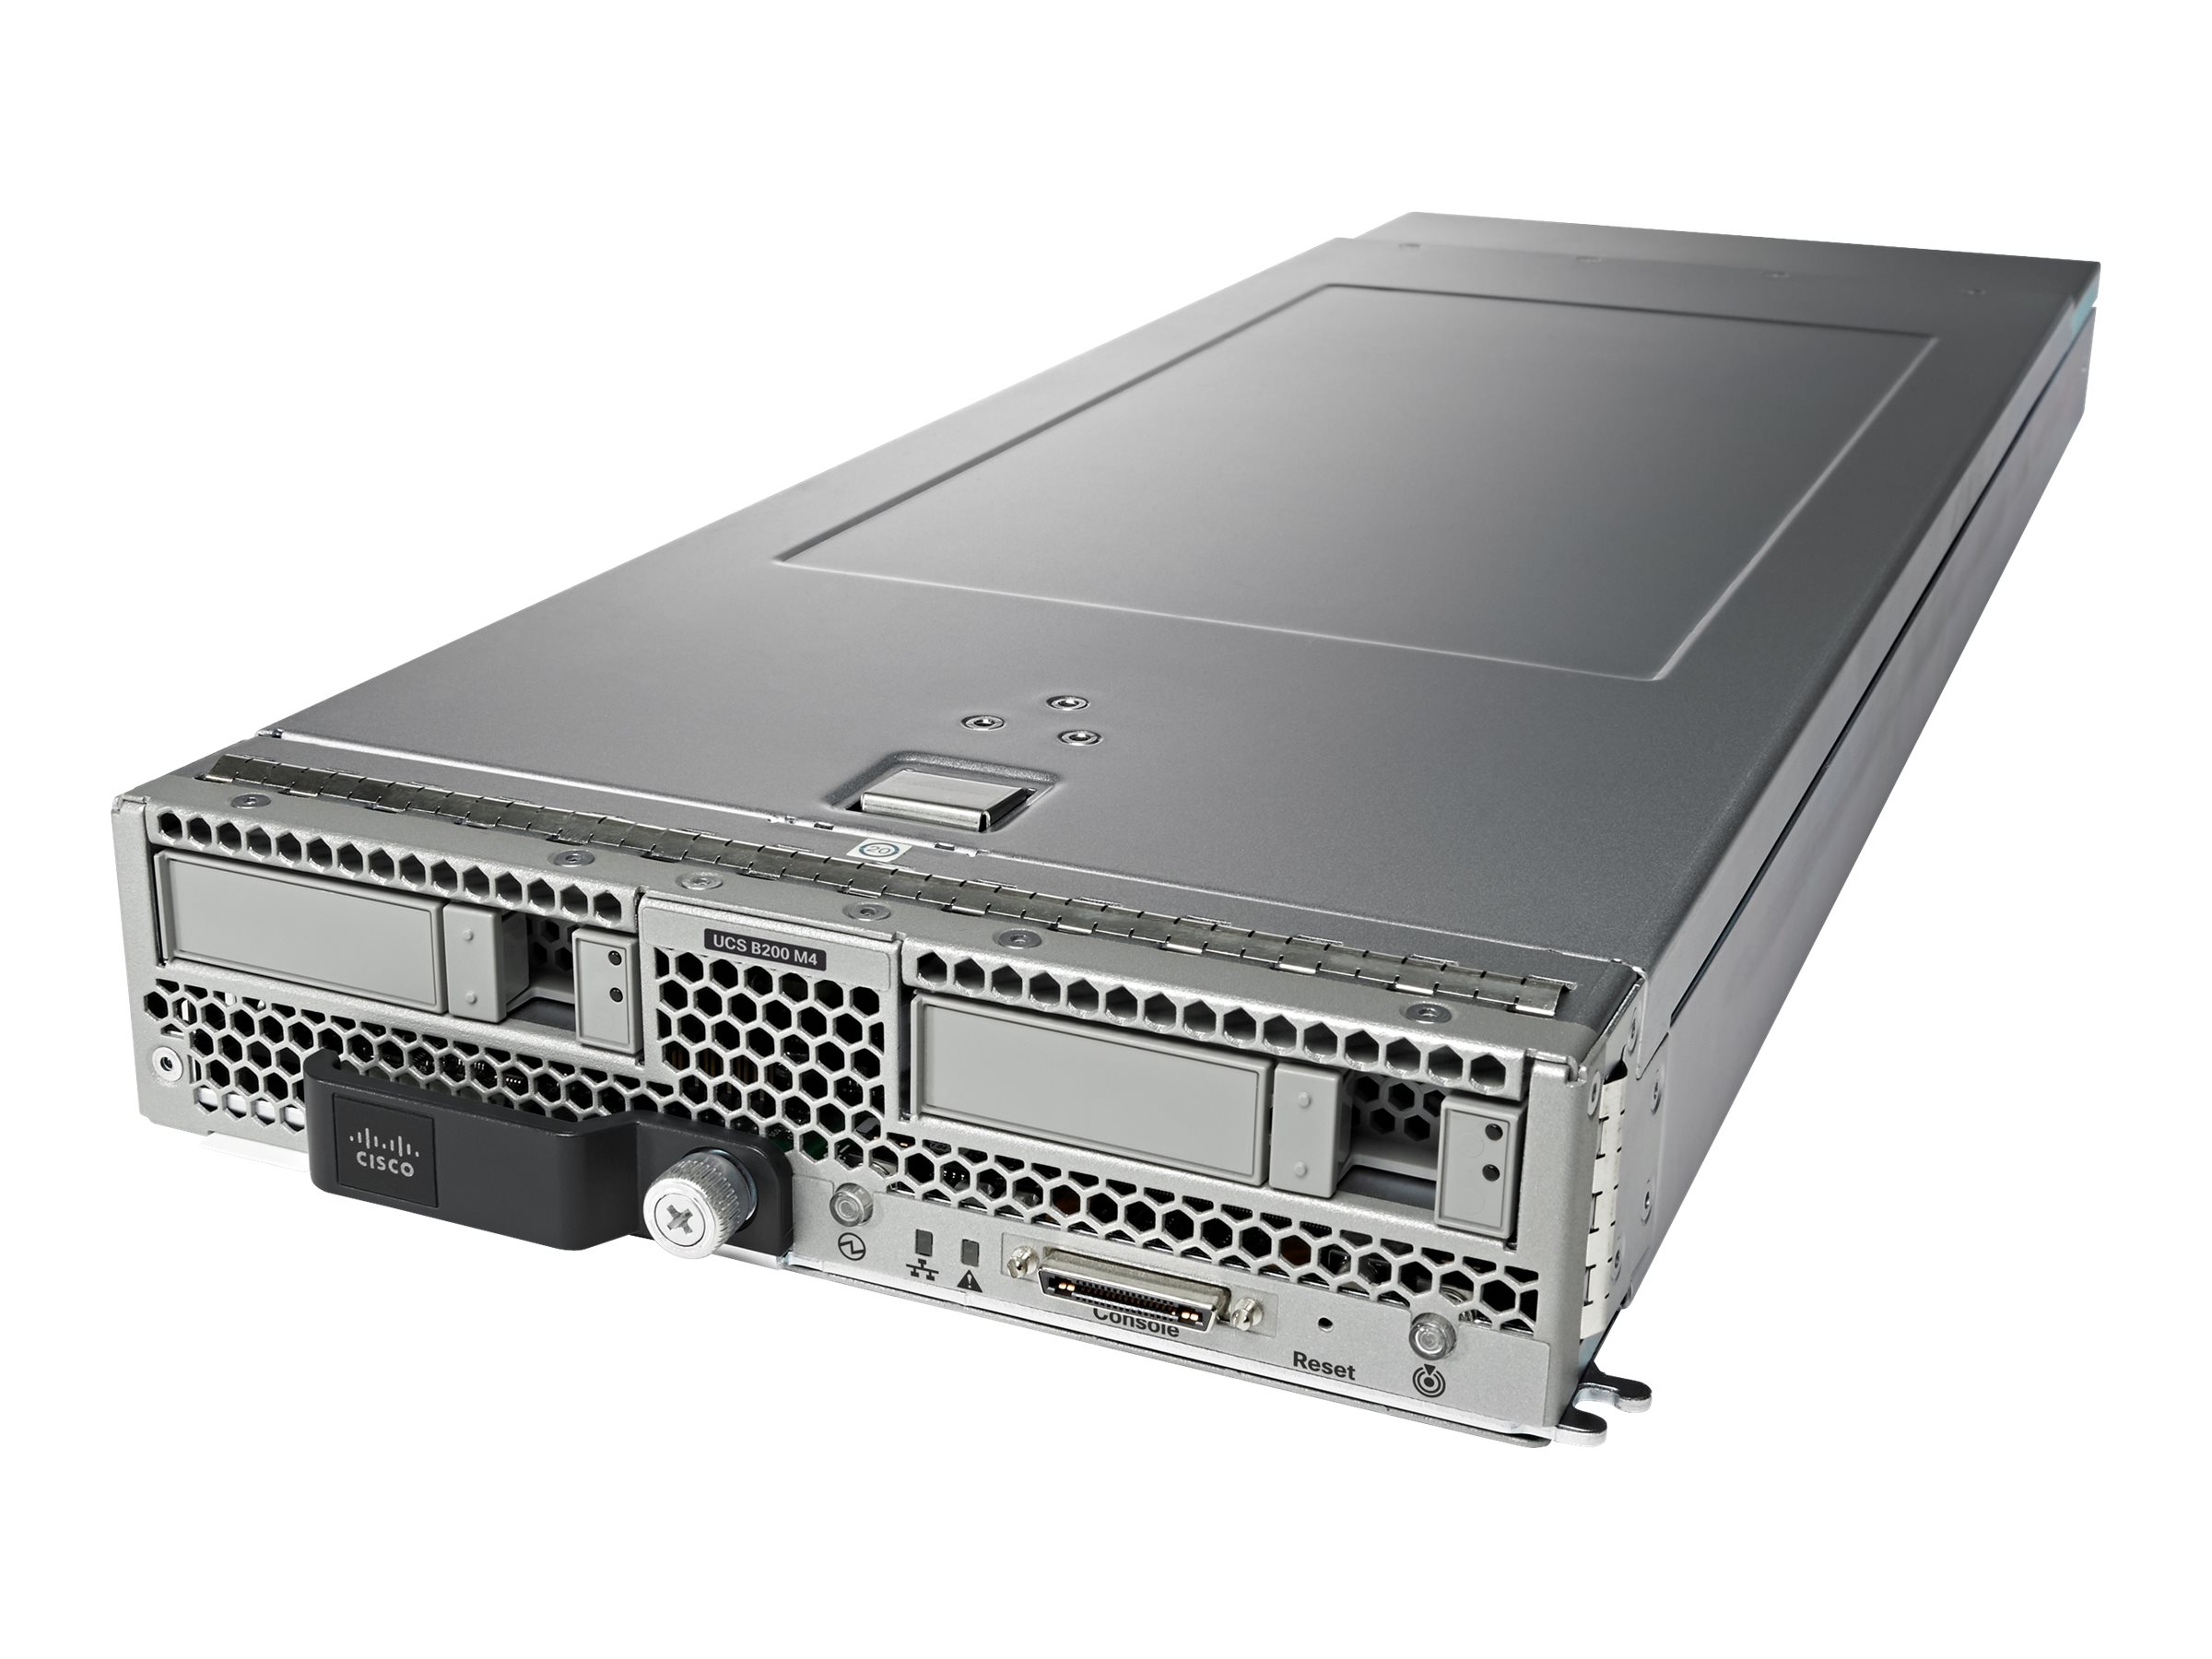 Cisco UCS Smart Play Select B200 M4 Blade Advanced 1 (2x)E5-2690 v3 256GB VIC1340, UCS-SPL-B200M4-A1, 20528363, Servers - Blade